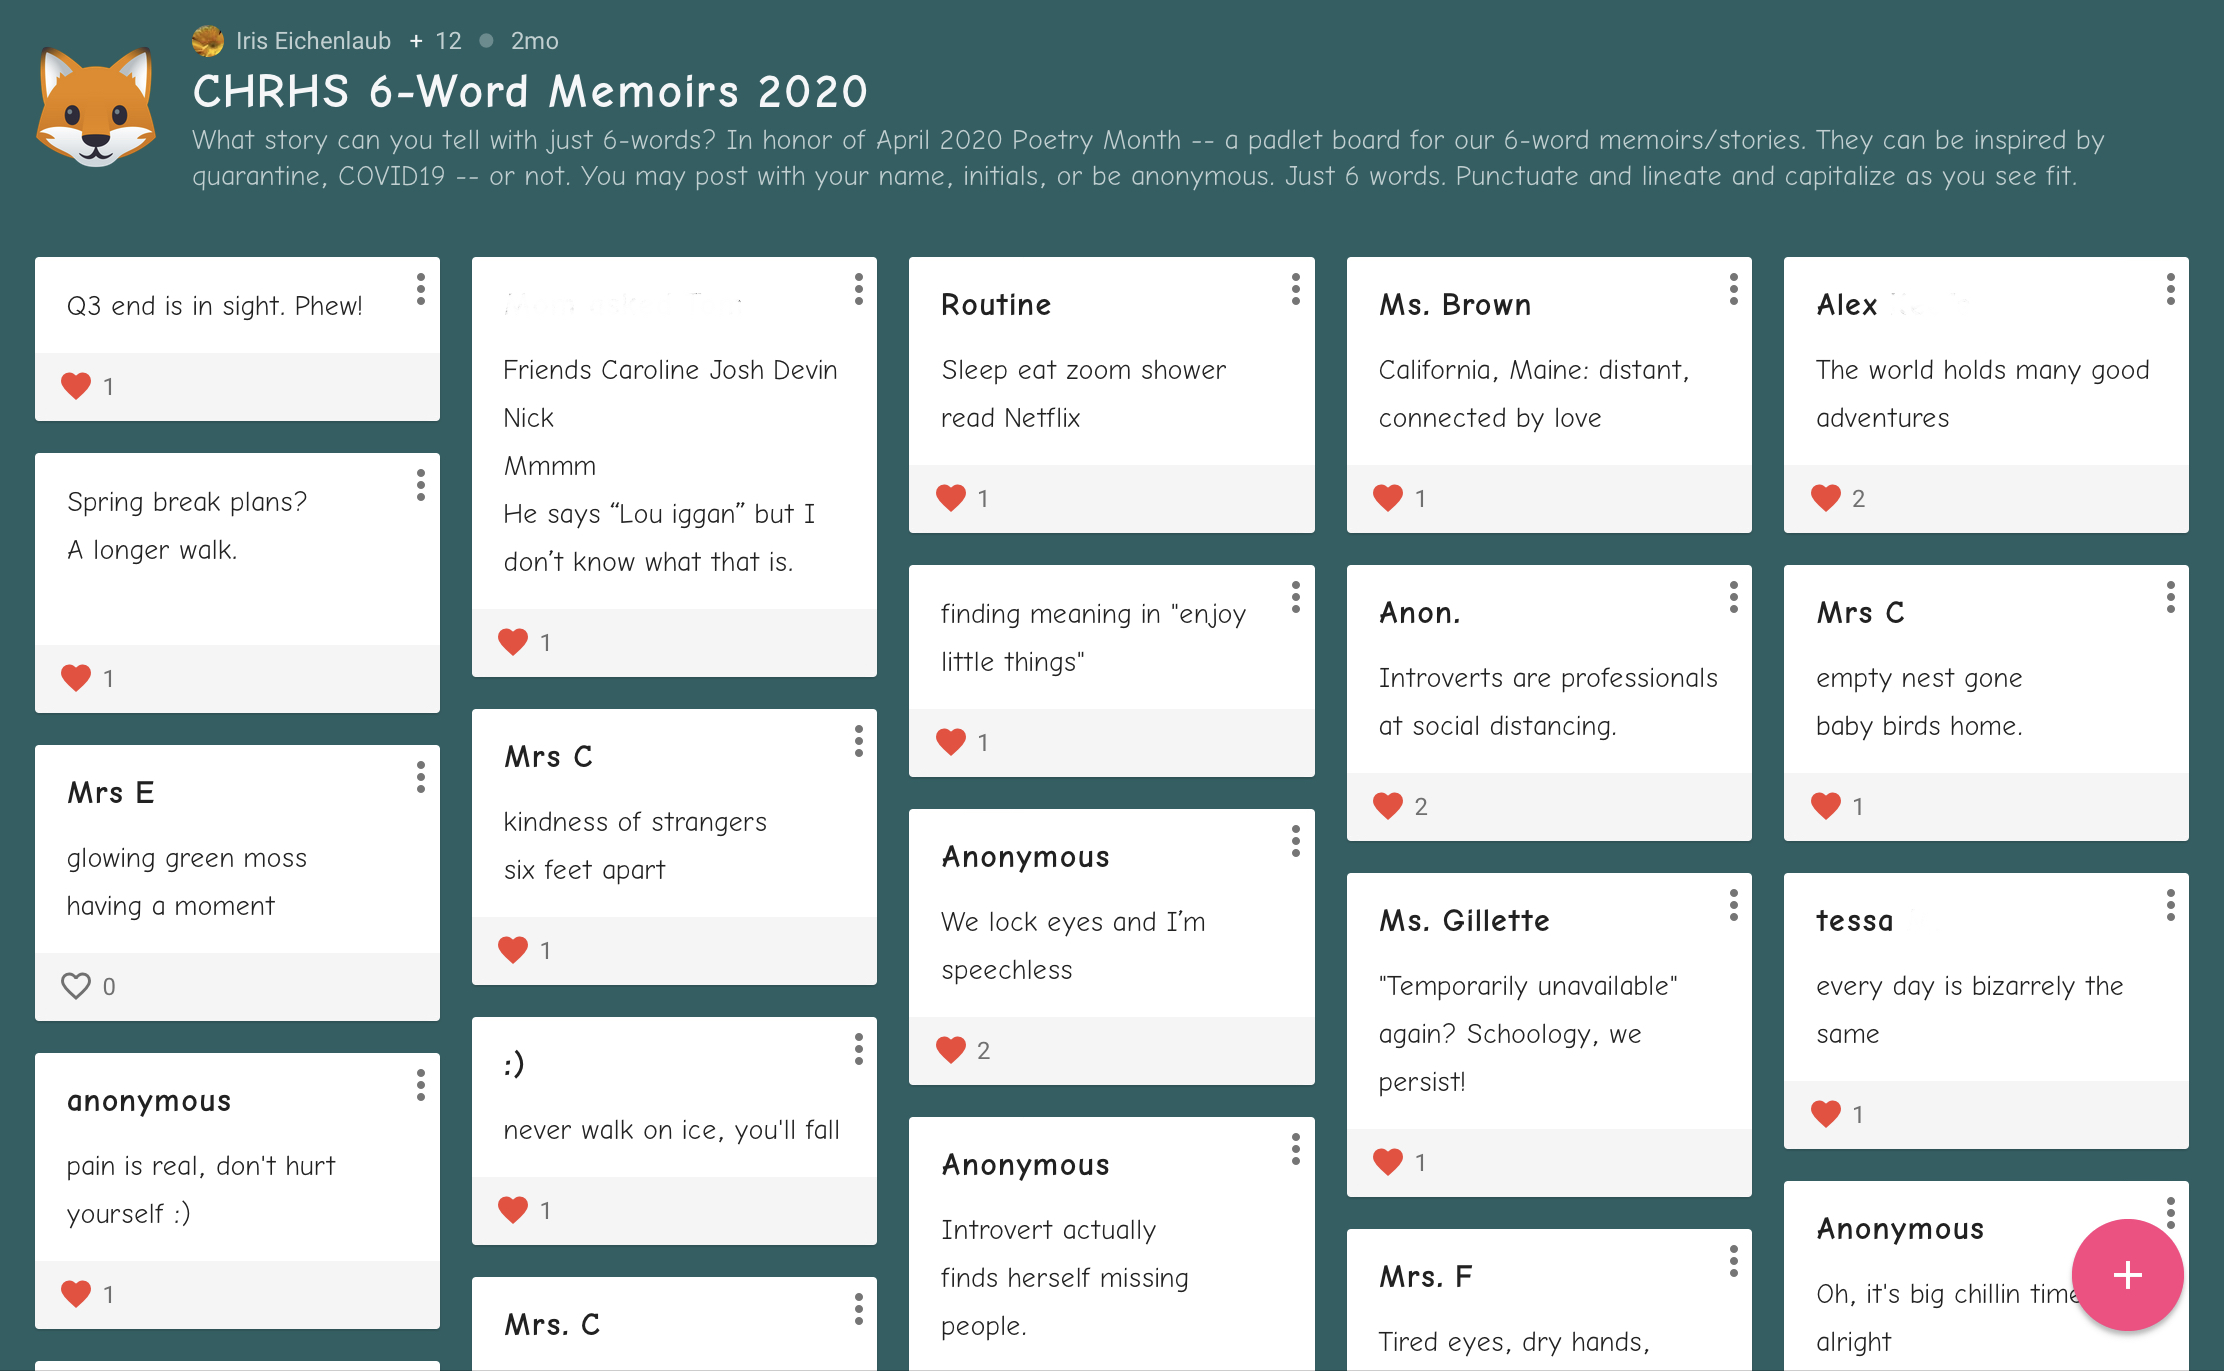 Padlet of 6-word memoirs and stories, a collaboration for virtual poetry month